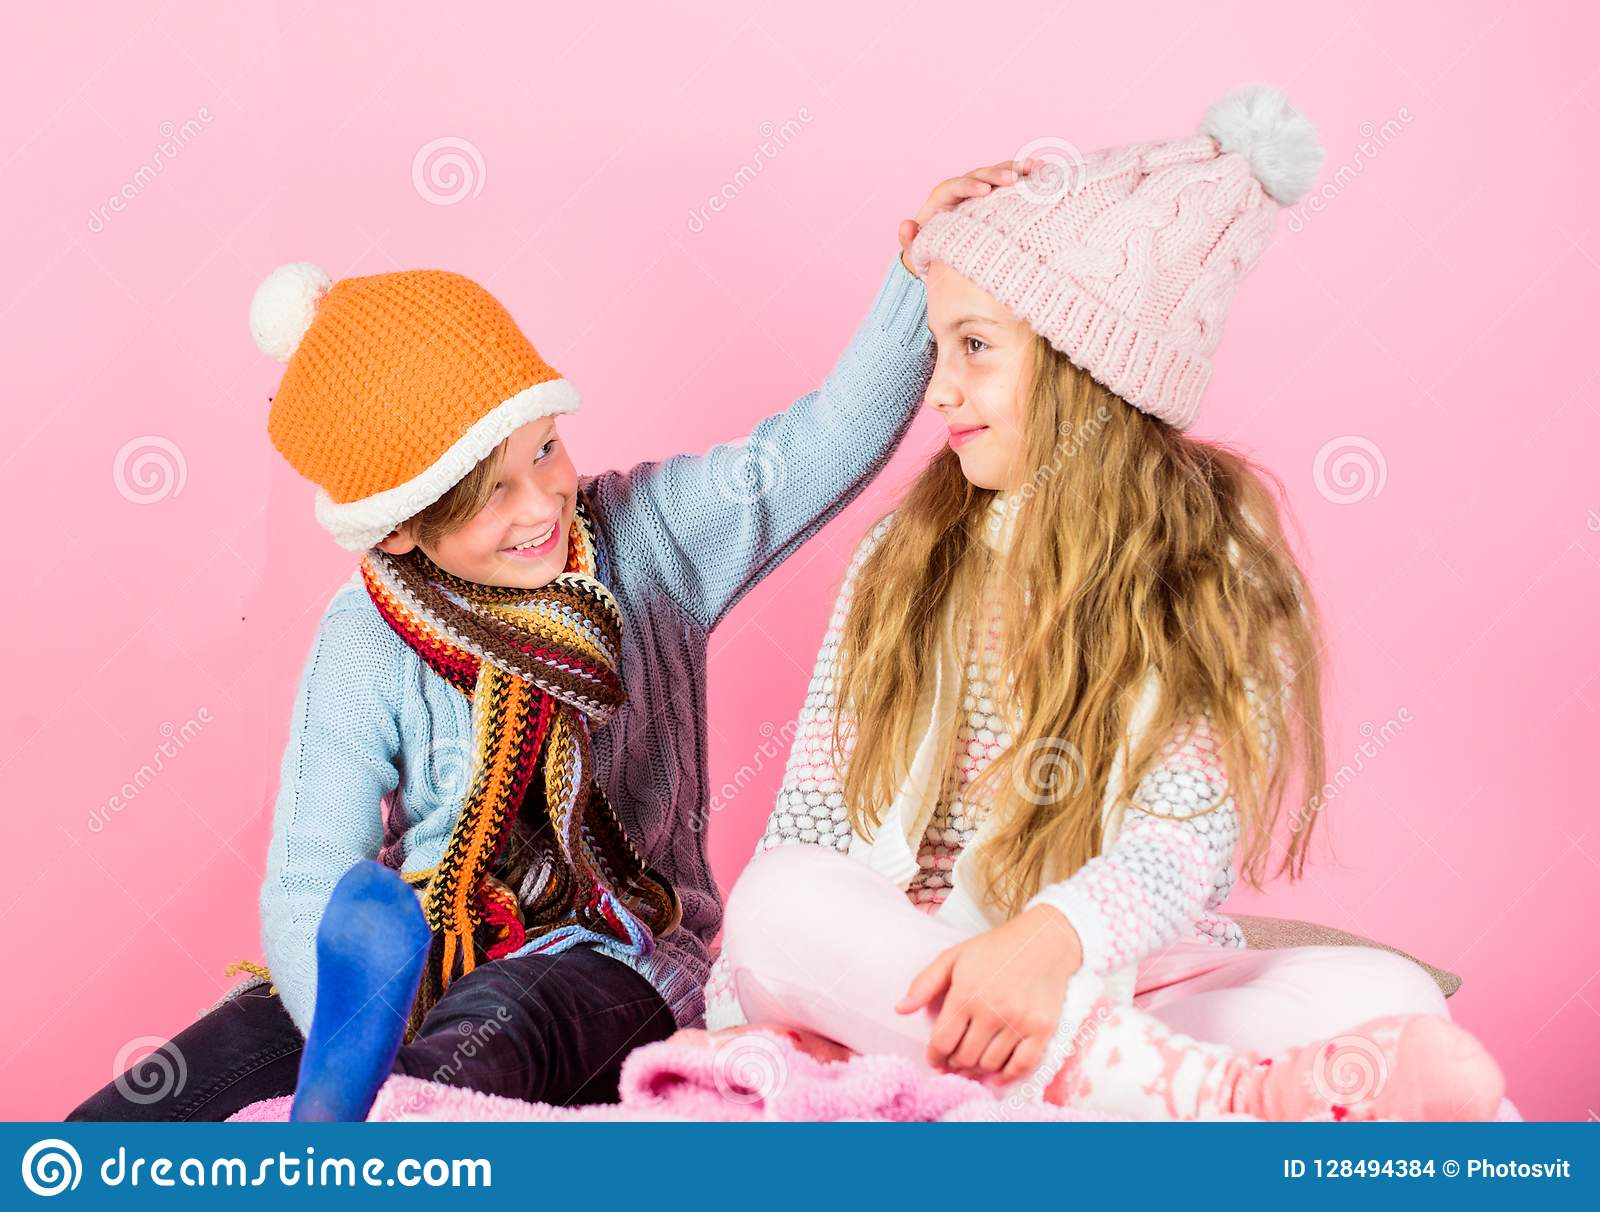 Winter season fashion accessories and clothes. Kids knitted winter hats. Children playful mood christmas holidays pink